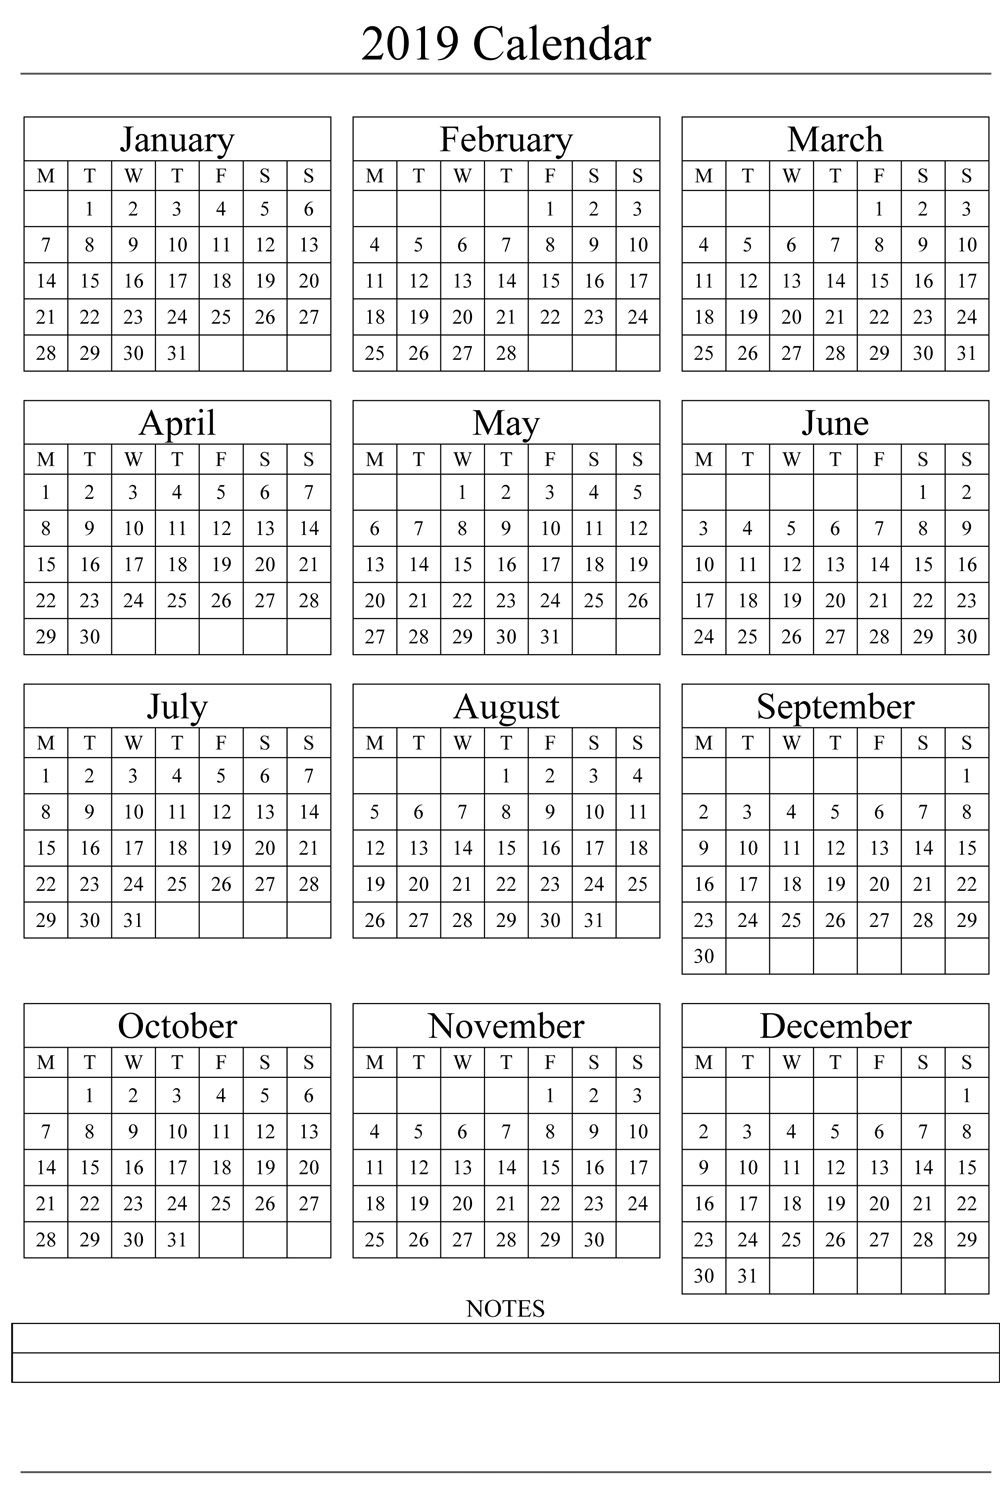 2019 One Page Calendar With Notes | 2019 Calendars | Free